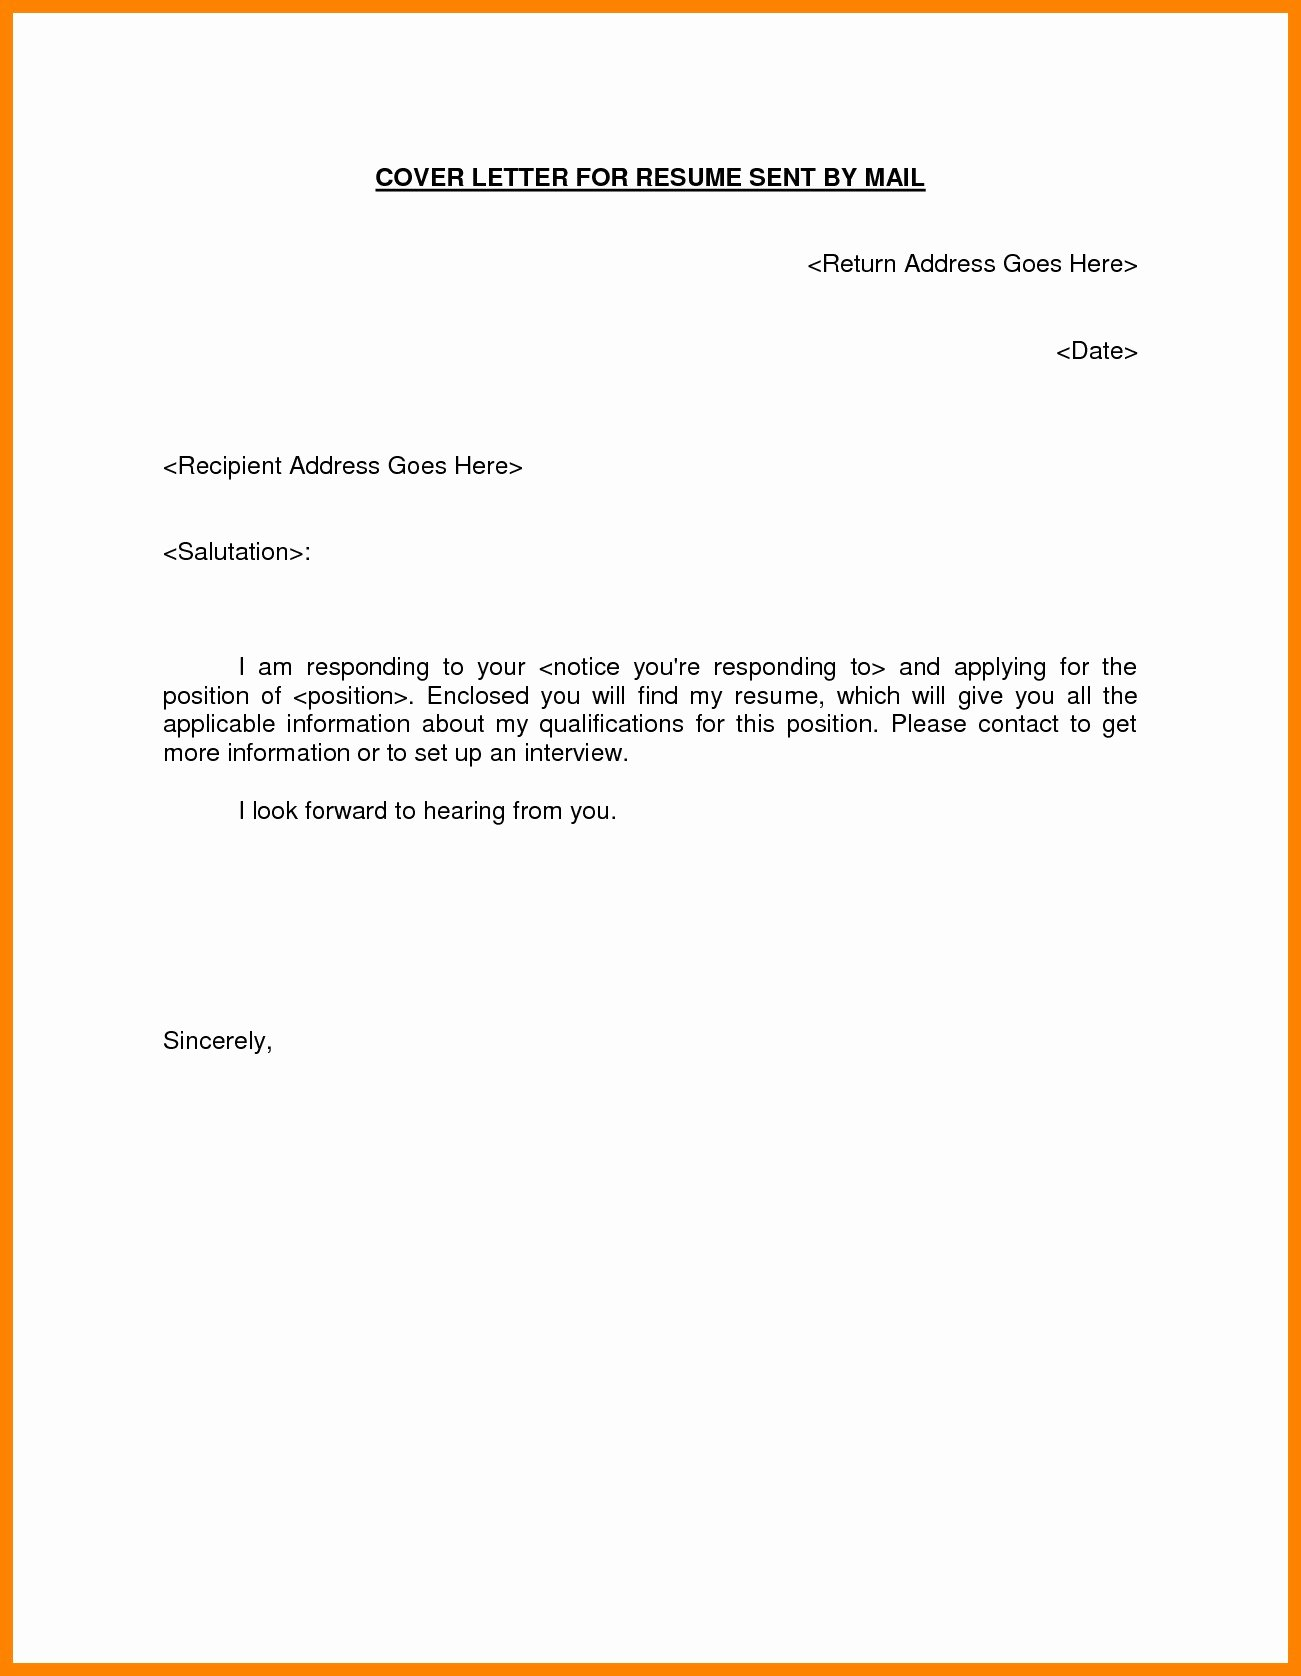 Email Templates for Sending Resumes 5 Email format for